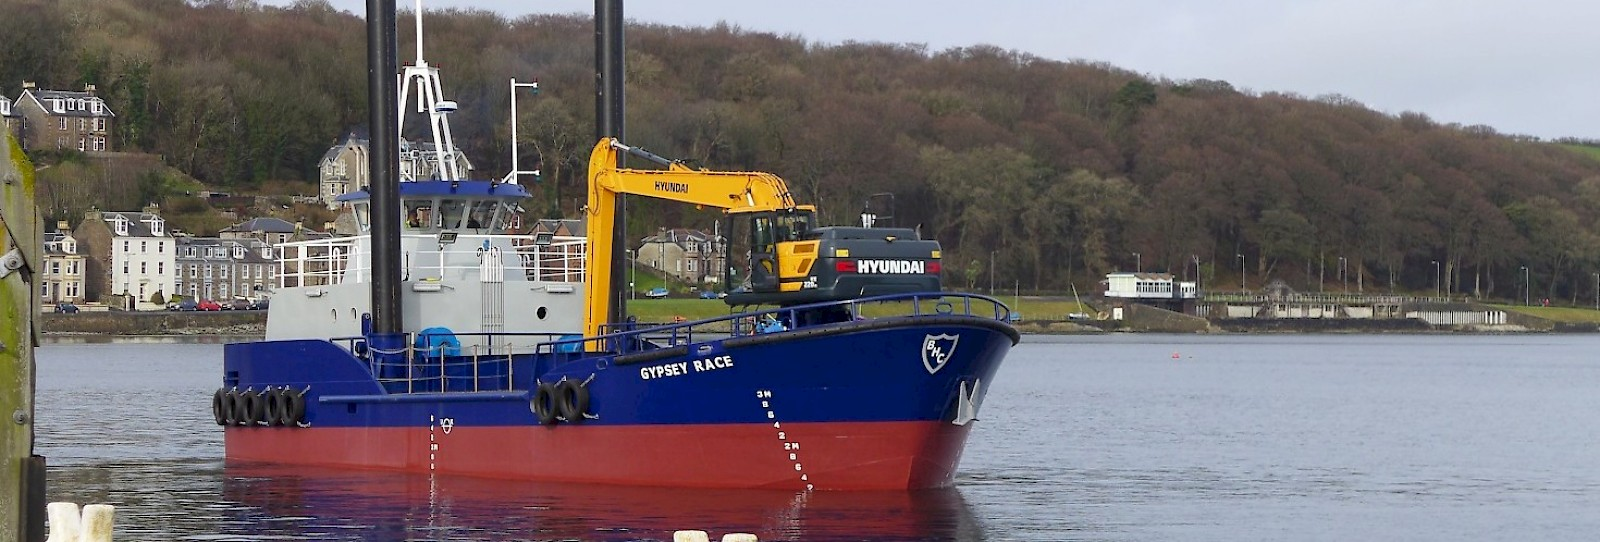 A smart looking dredger with capability above her scale